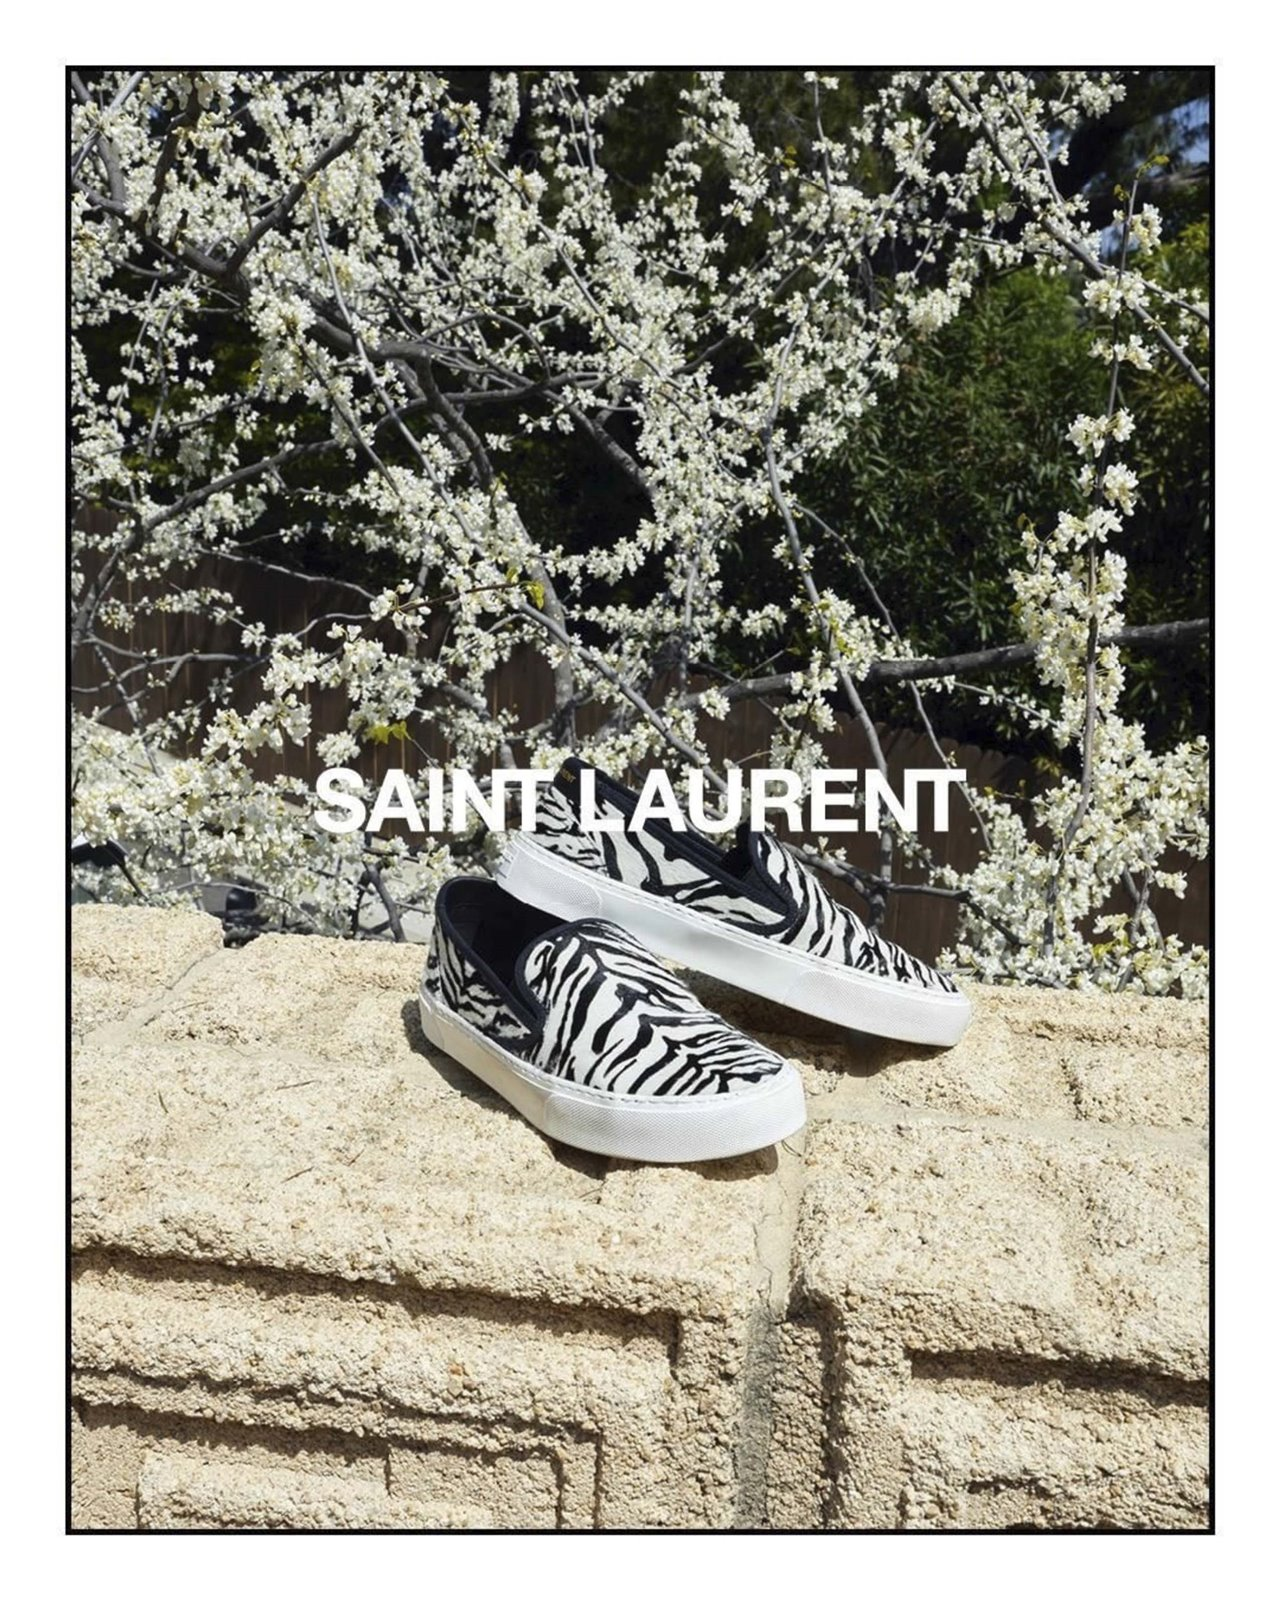 Zapatillas de Saint Laurent by Anthony Vaccarello: Winter 19 Collection